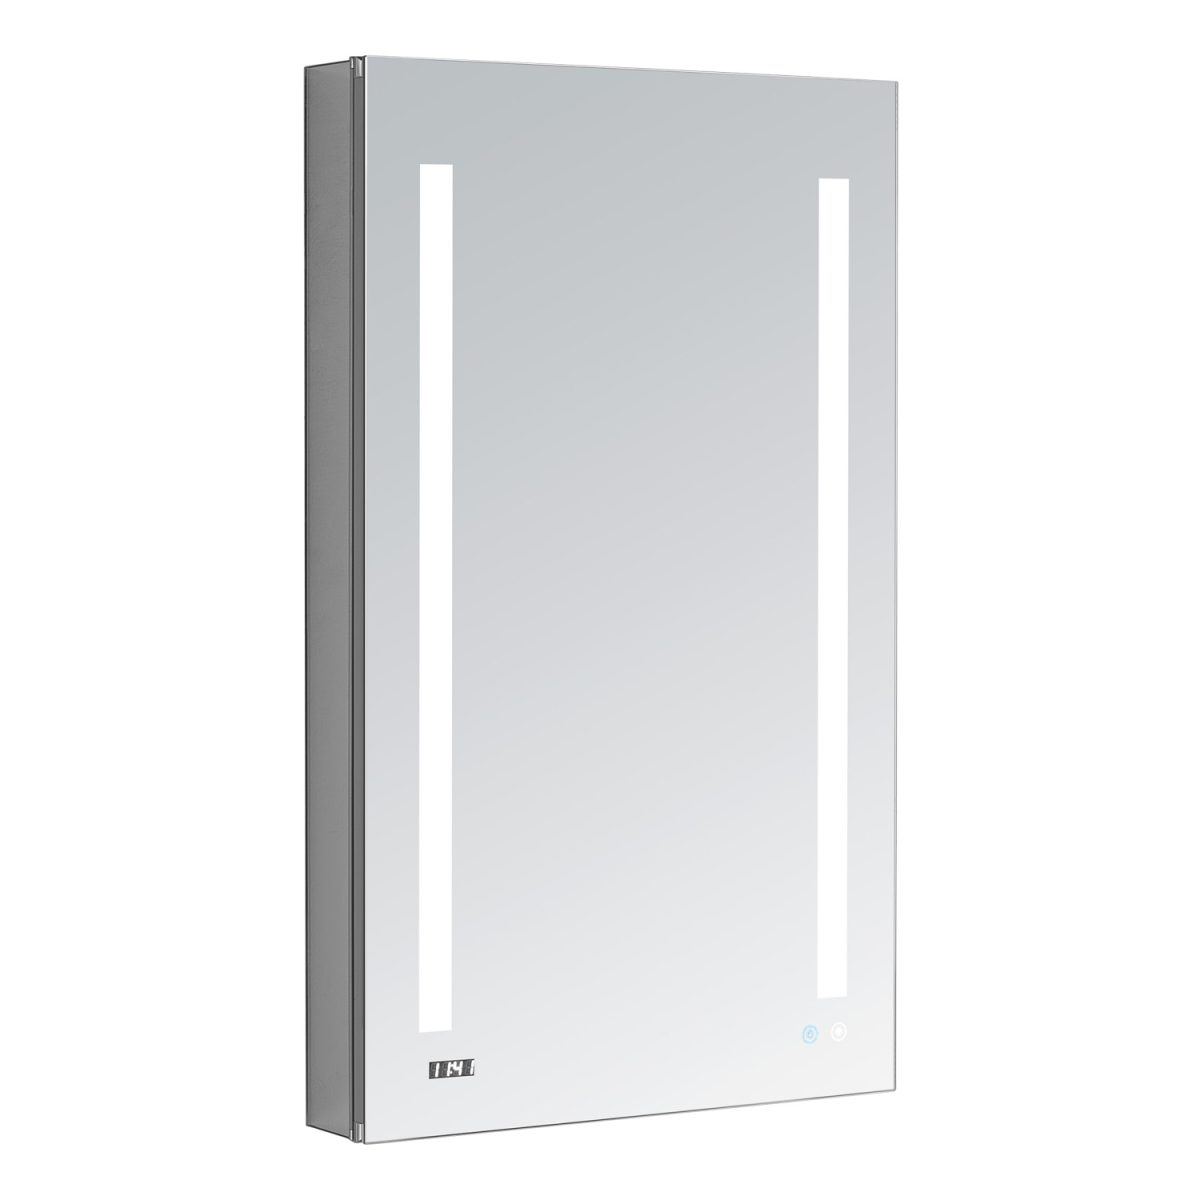 AQUADOM Signature Royale 24 inches x 40 inches Right Sided LED Lighted Mirror Glass Medicine Cabinet for Bathroom